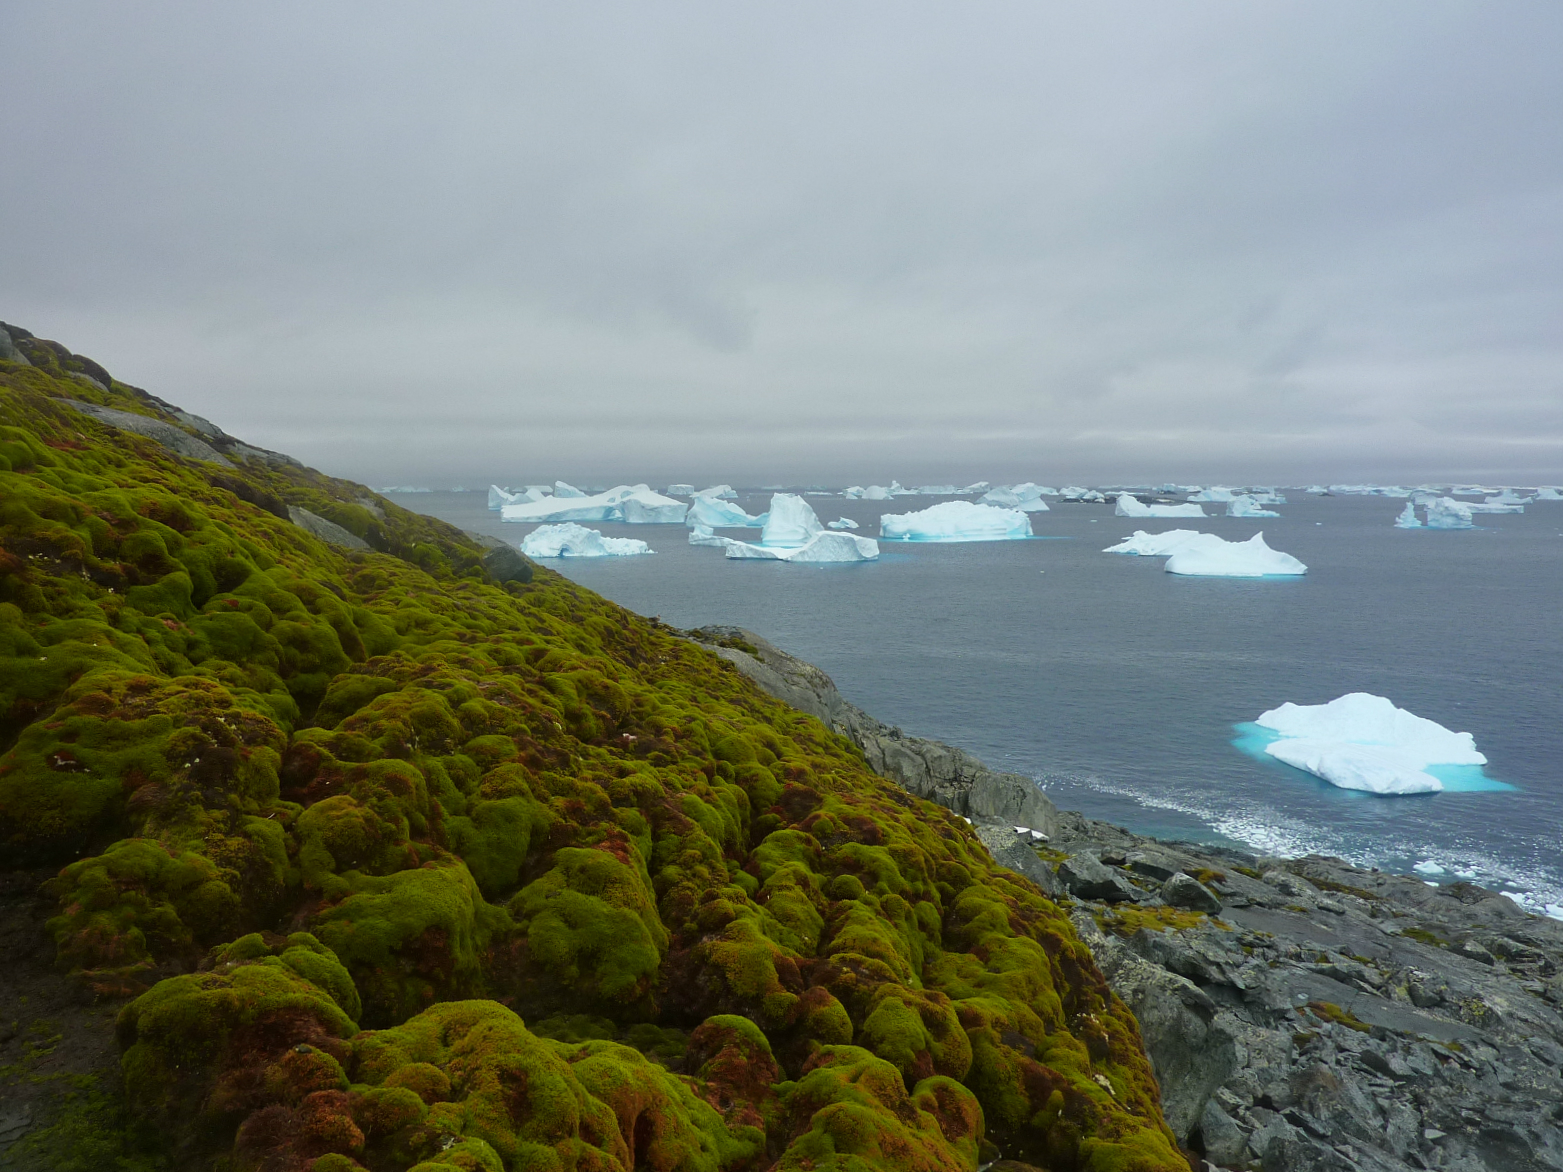 Antarctica began to rapidly become covered with moss